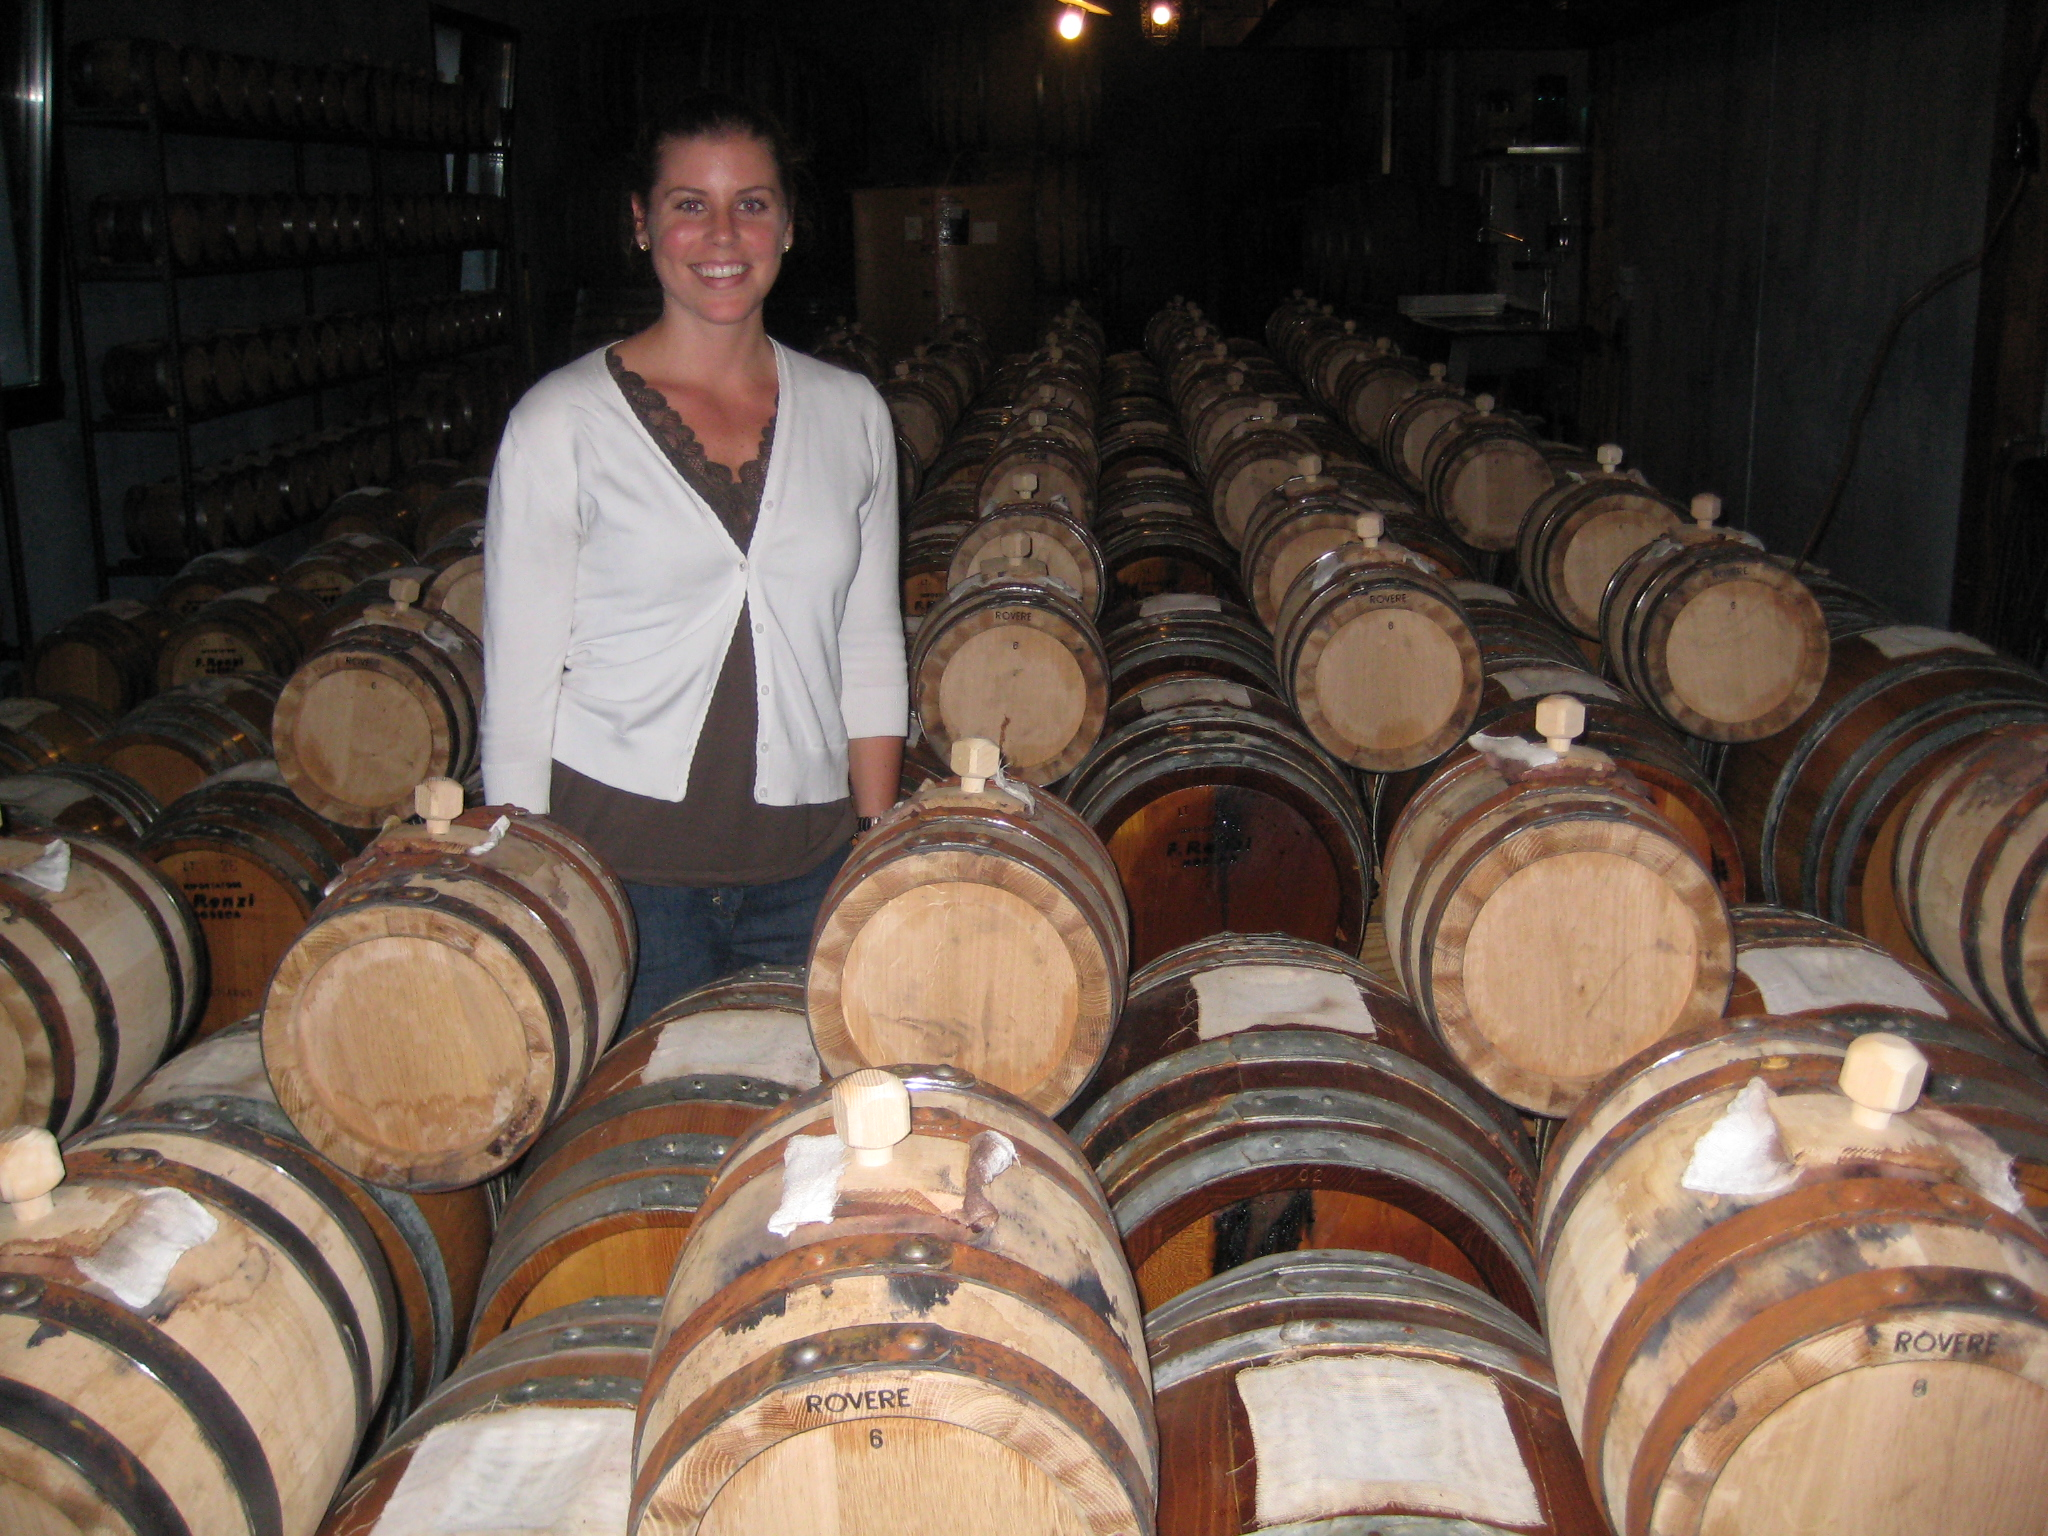 In a Balsamic Cellar at Delea Winery in Ticino, Switzerland